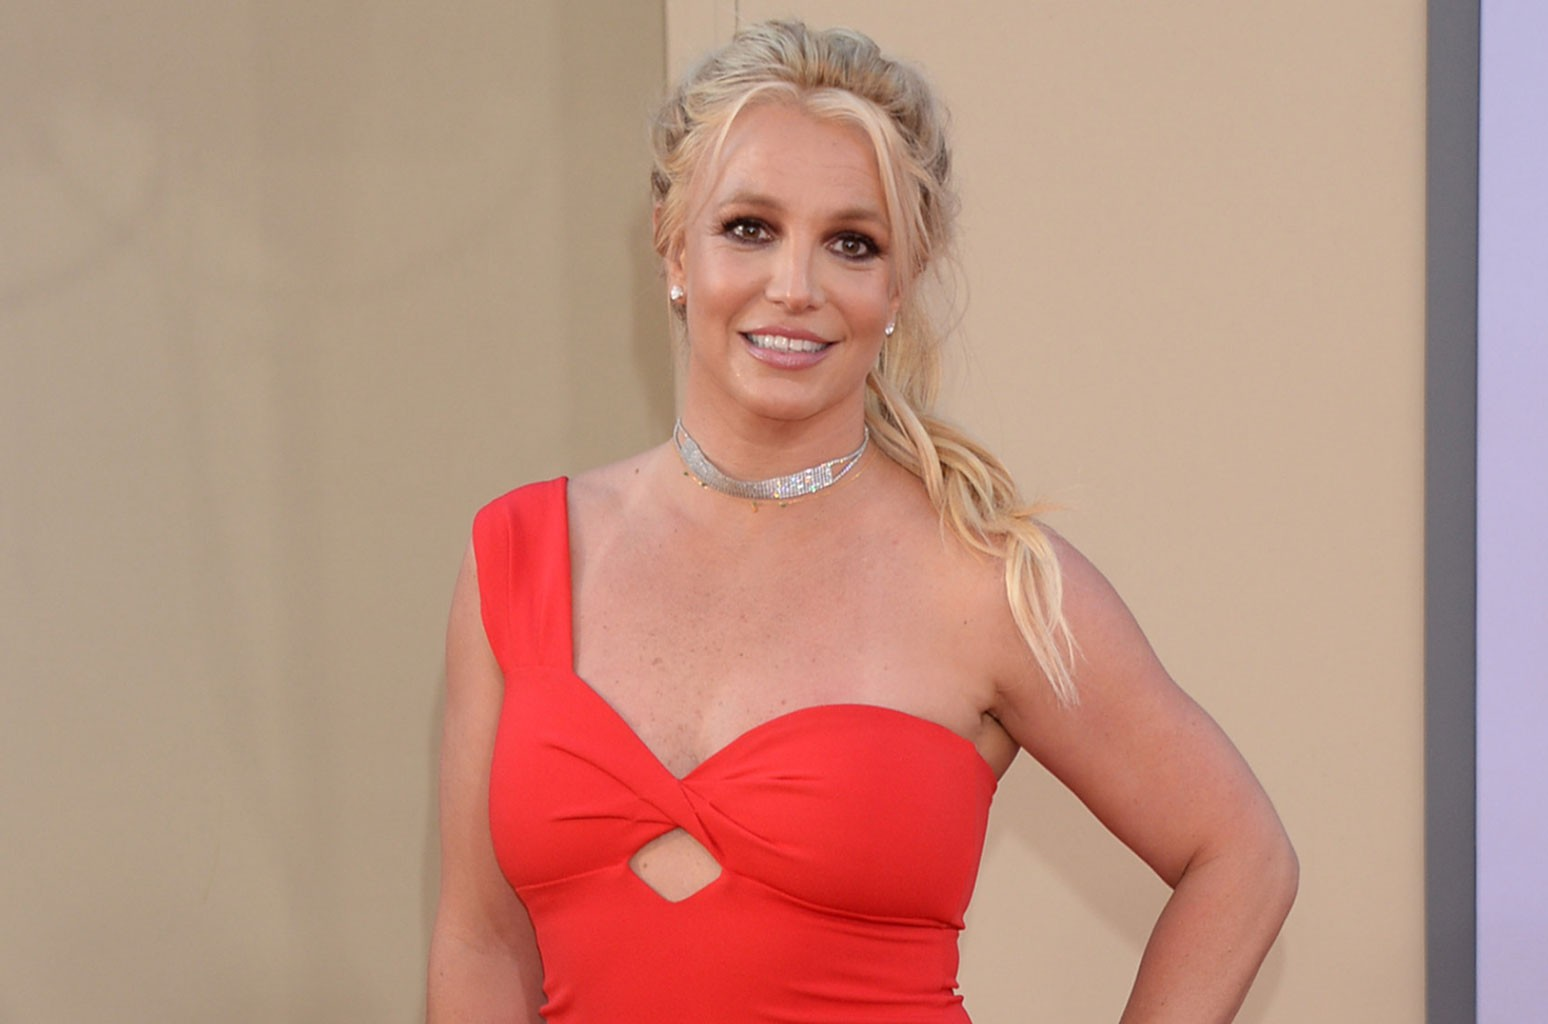 Britney Spears 'Once Upon a Time in Hollywood' film premiere in Los Angeles on July 22, 2019.